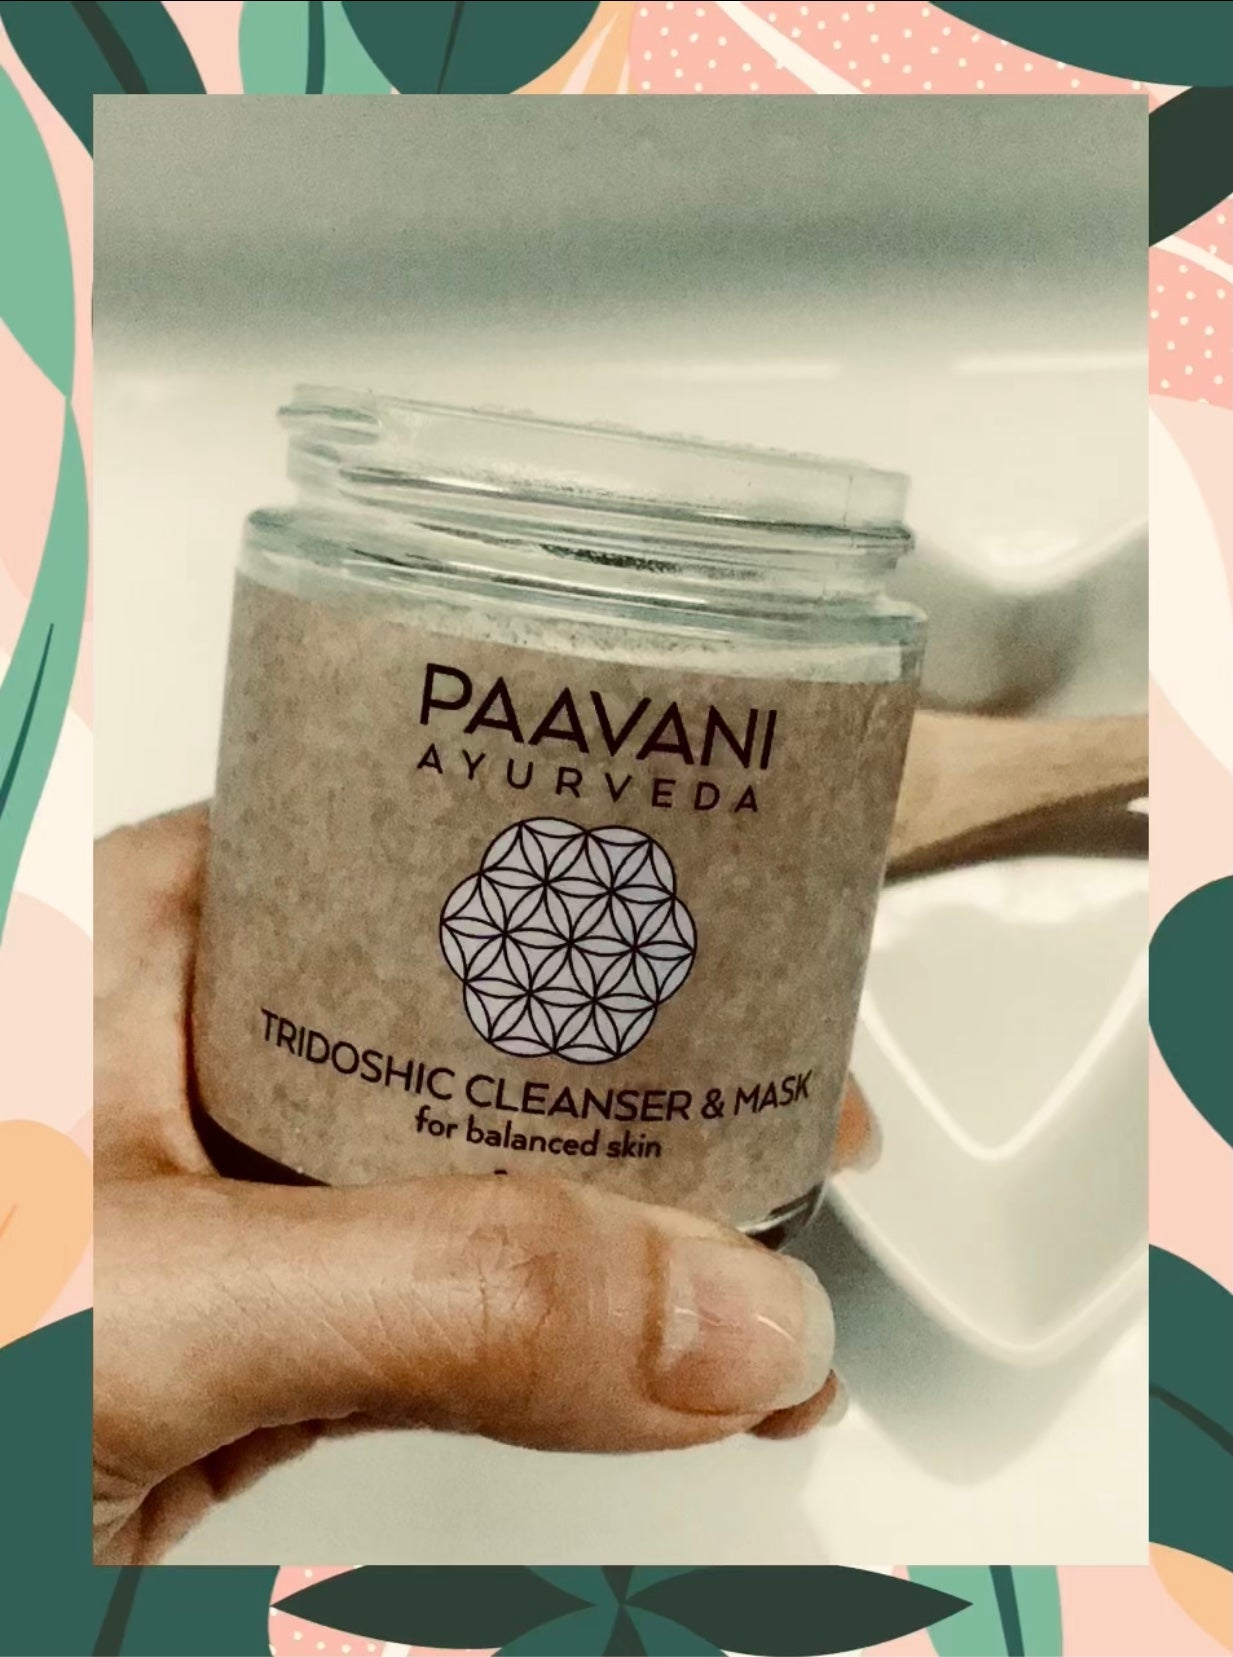 PAAVANI Ayurveda creates 2-in-1 Cleansers & Masks. Organic skin care. Made in US. Face Cleanser. Available at BeautyKat.com.